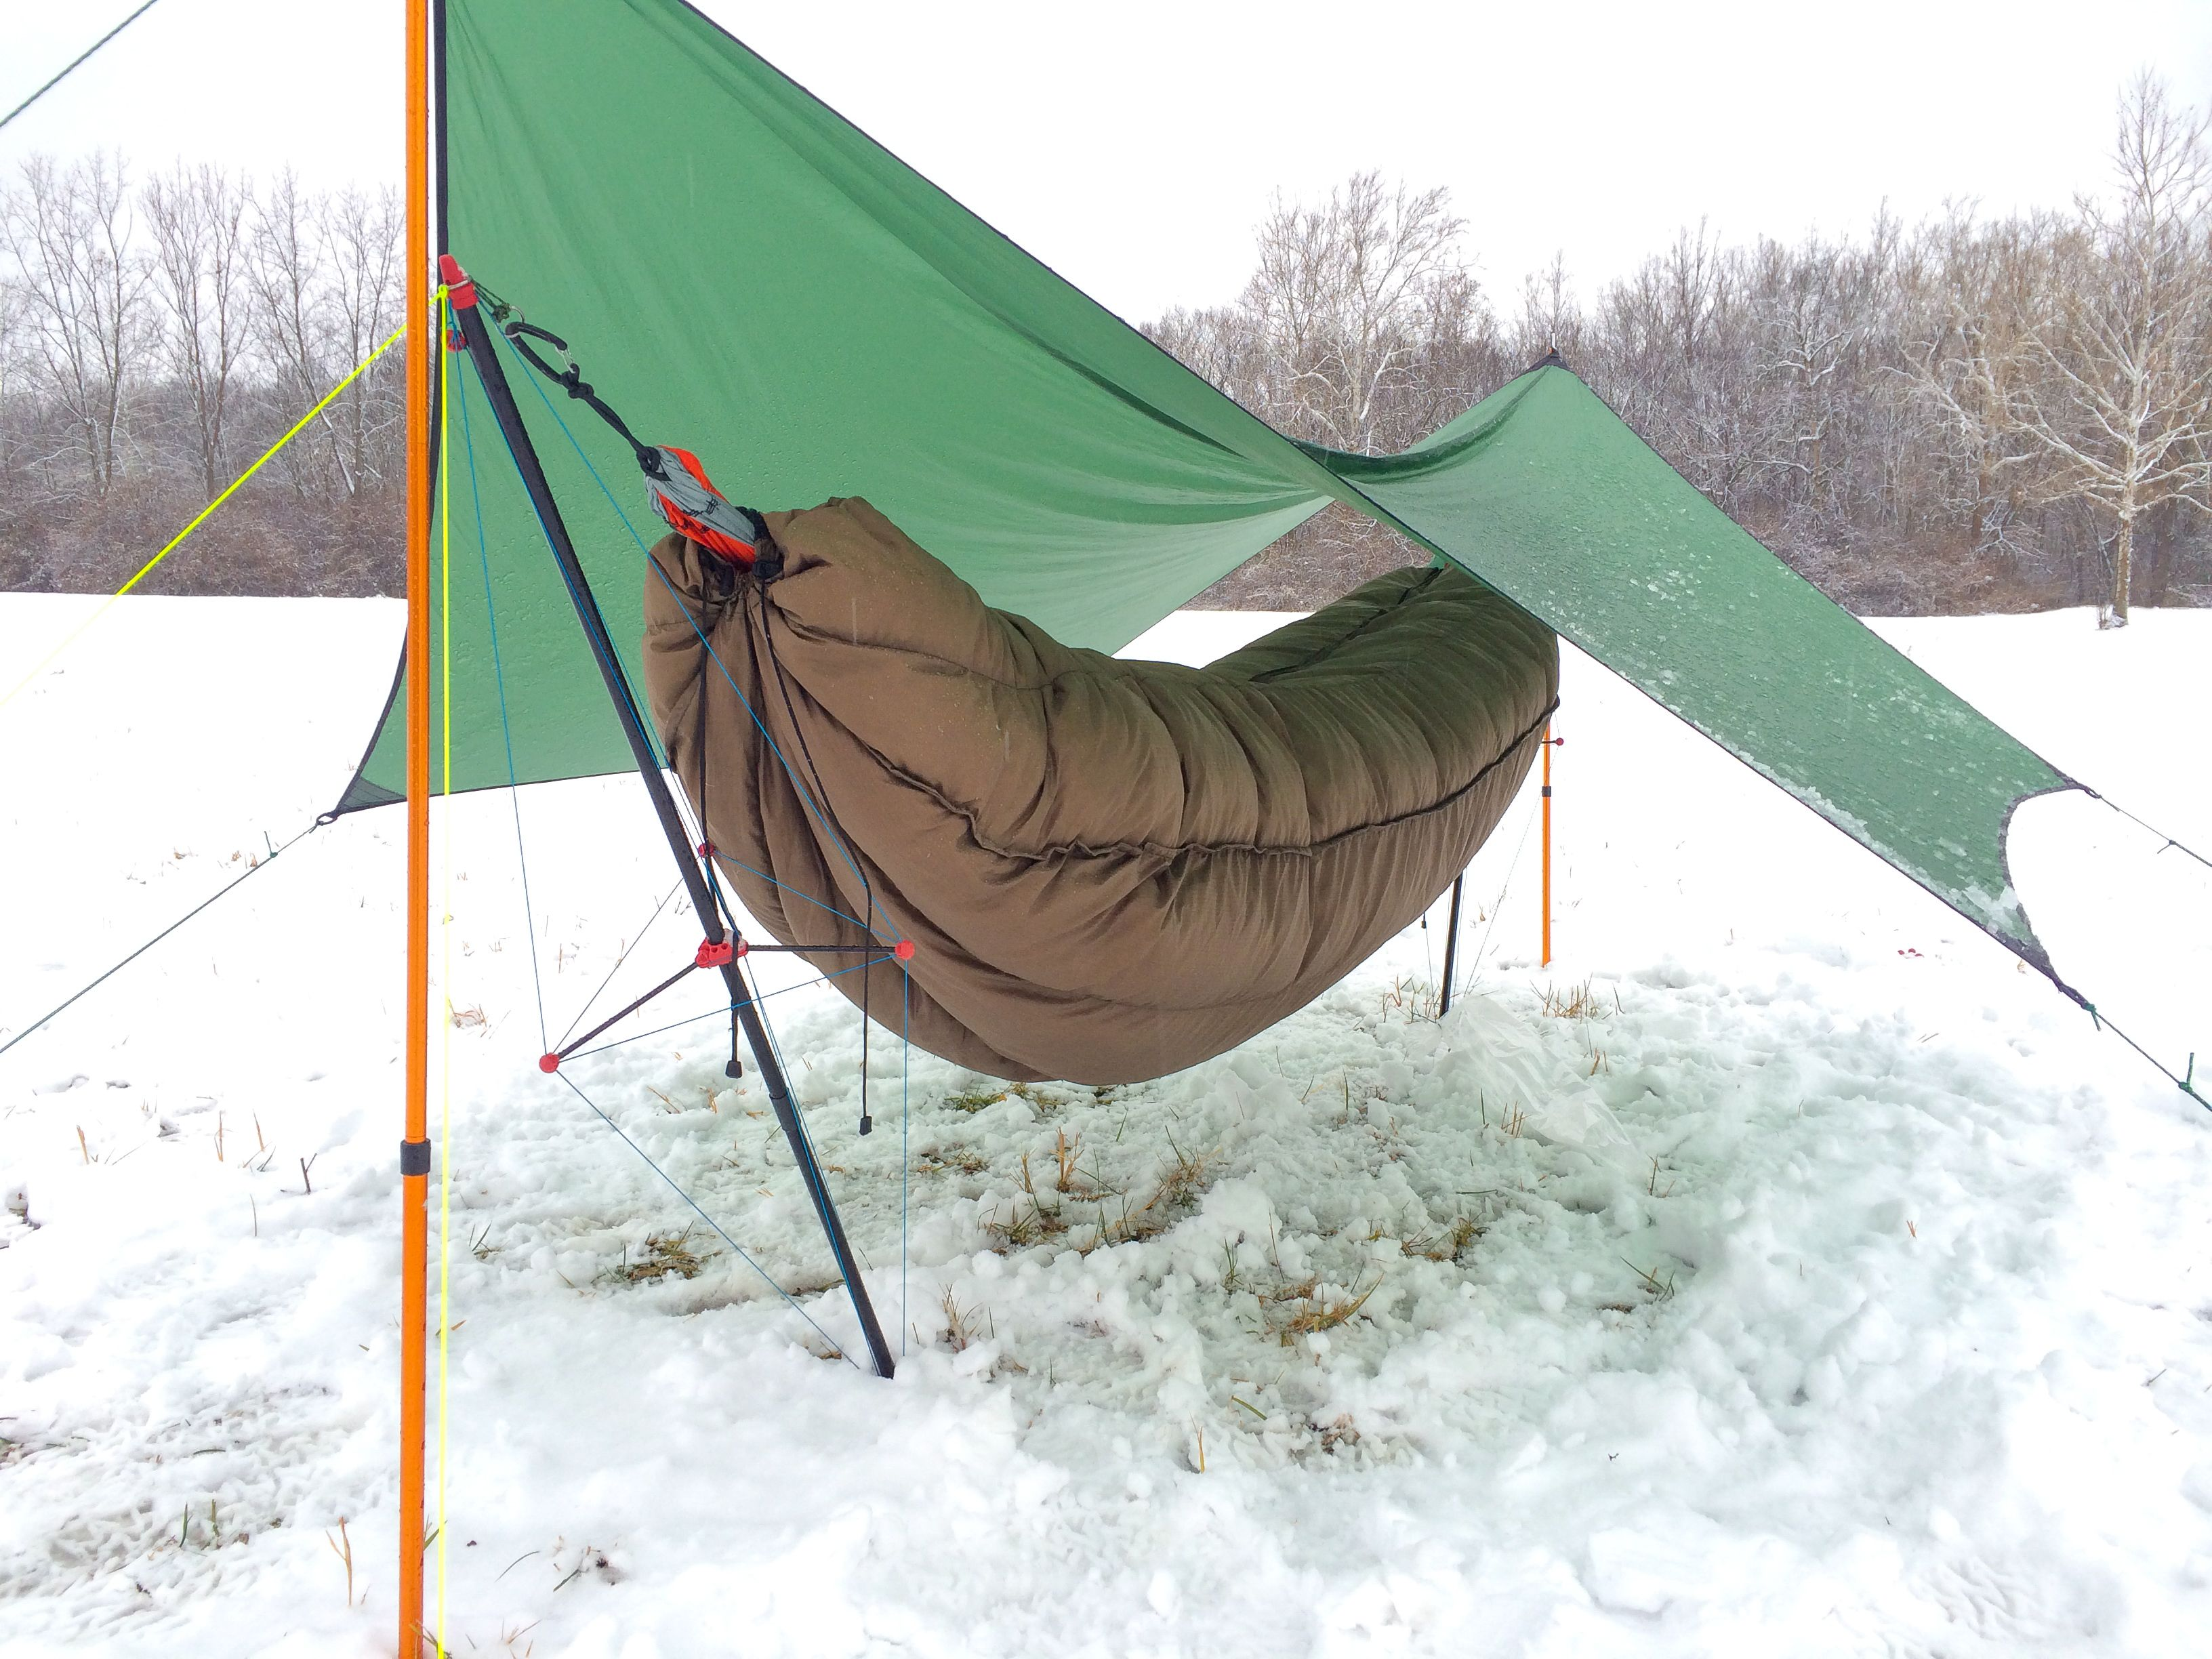 private let hammock group waters your see four clark cfm hanging index tony camping forum bwca season s boundary tarp nx